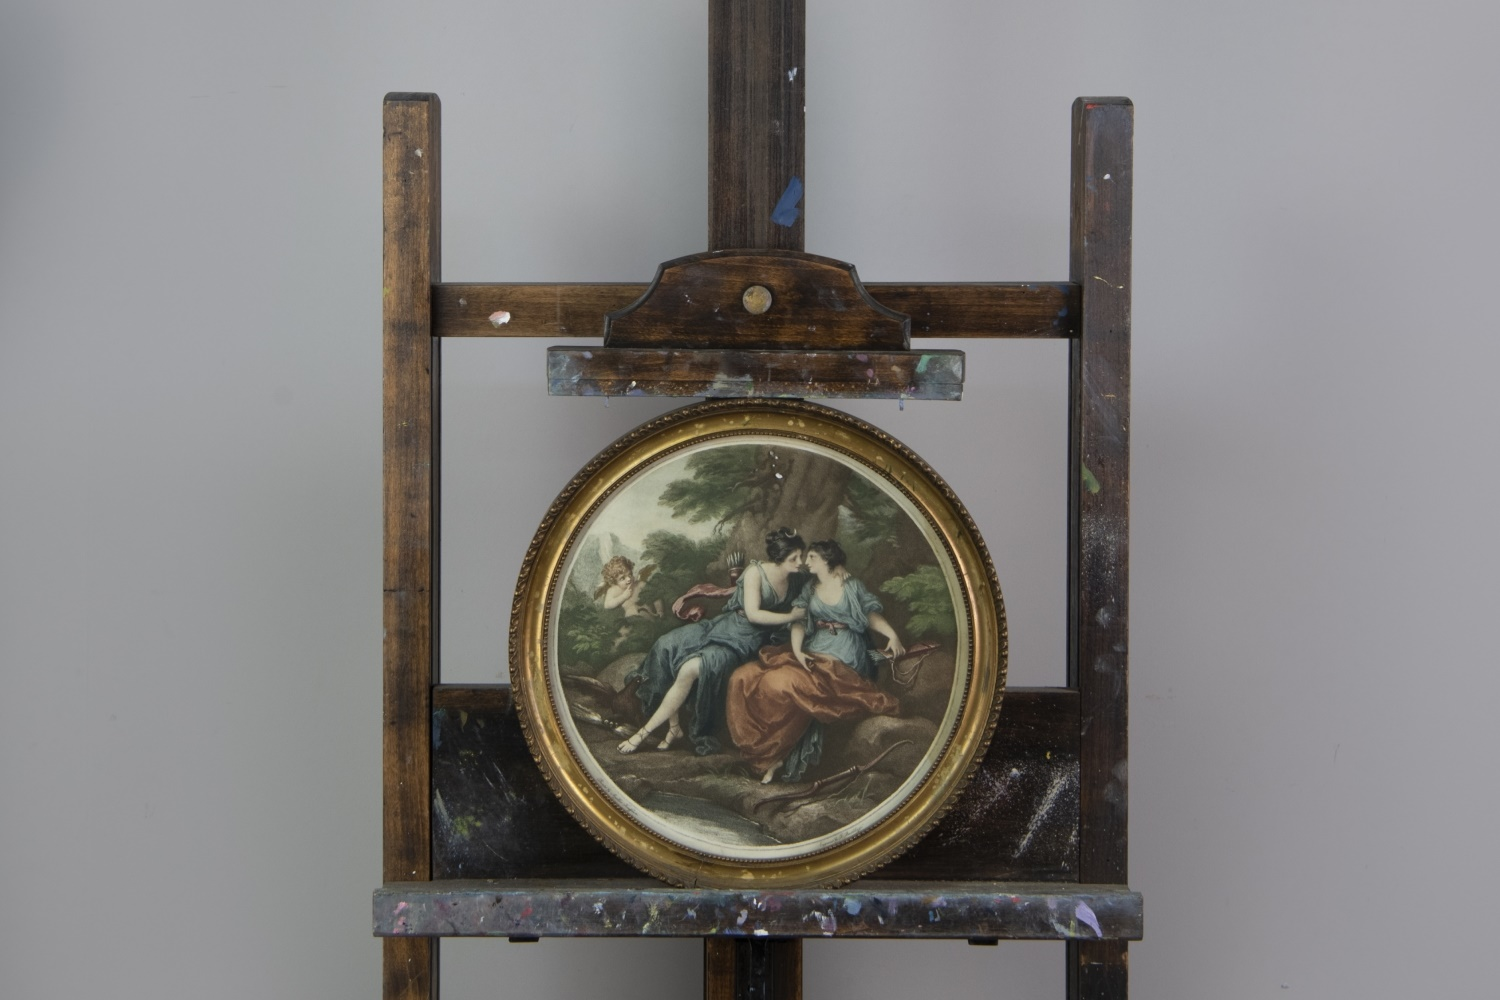 ANGELICA KAUFFMAN (AFTER), MEZZOTINTS BY AND AFTER BARTOLOZZI